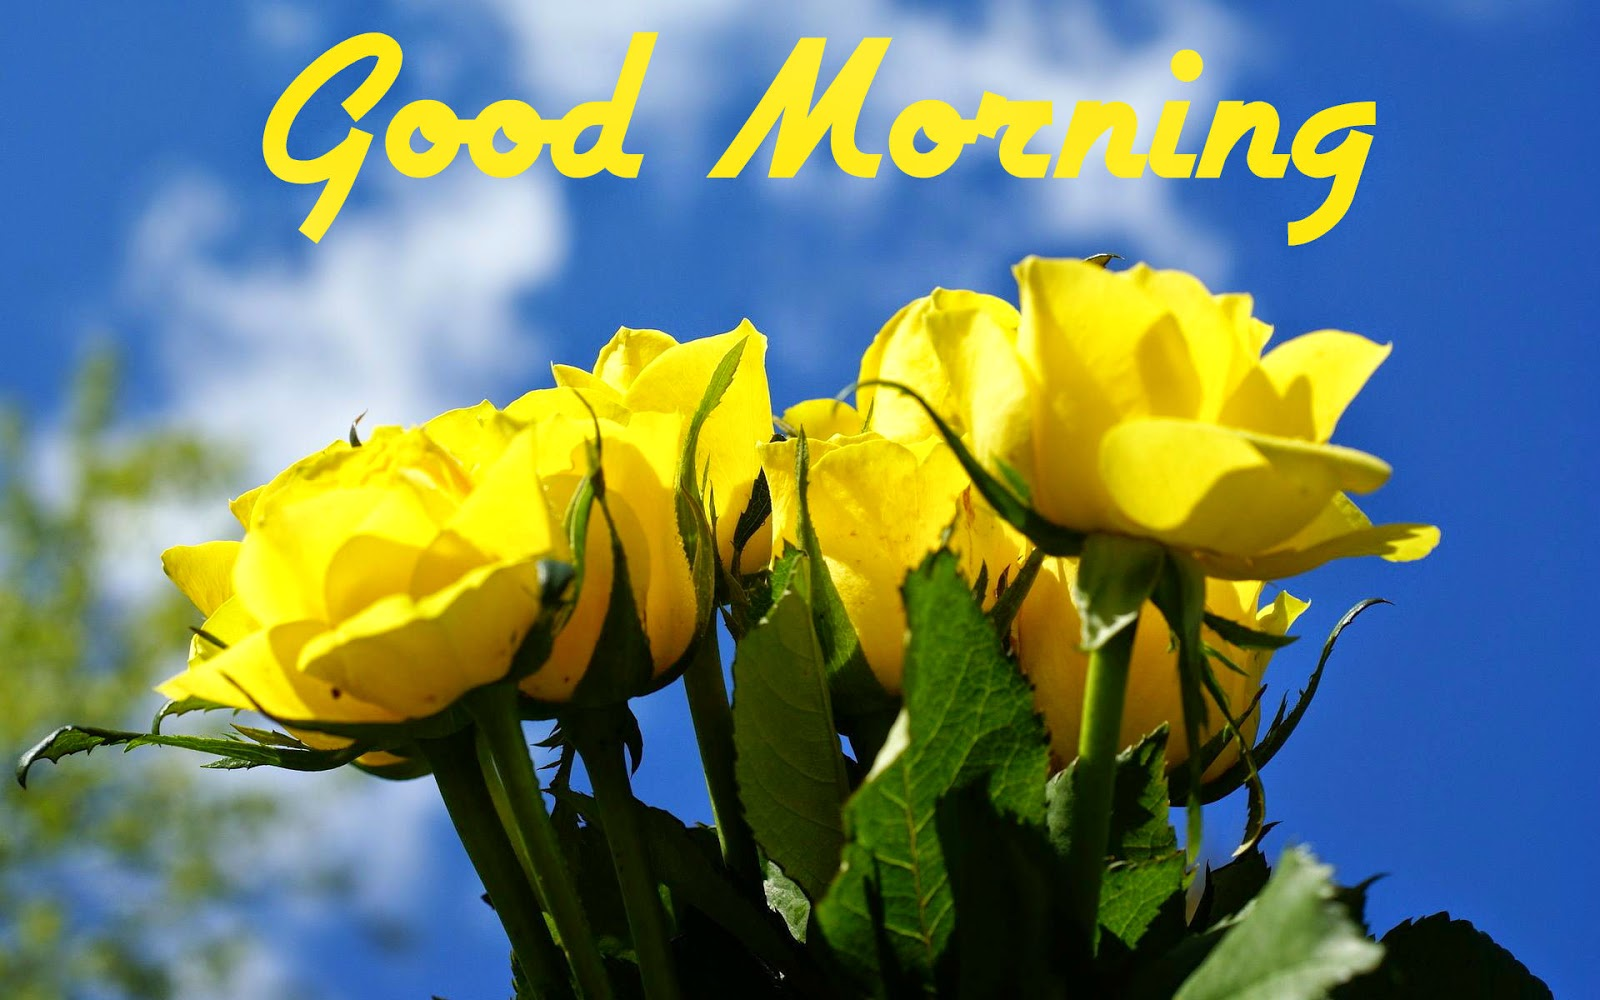 Good Morning With Beautiful Yellow Flowers